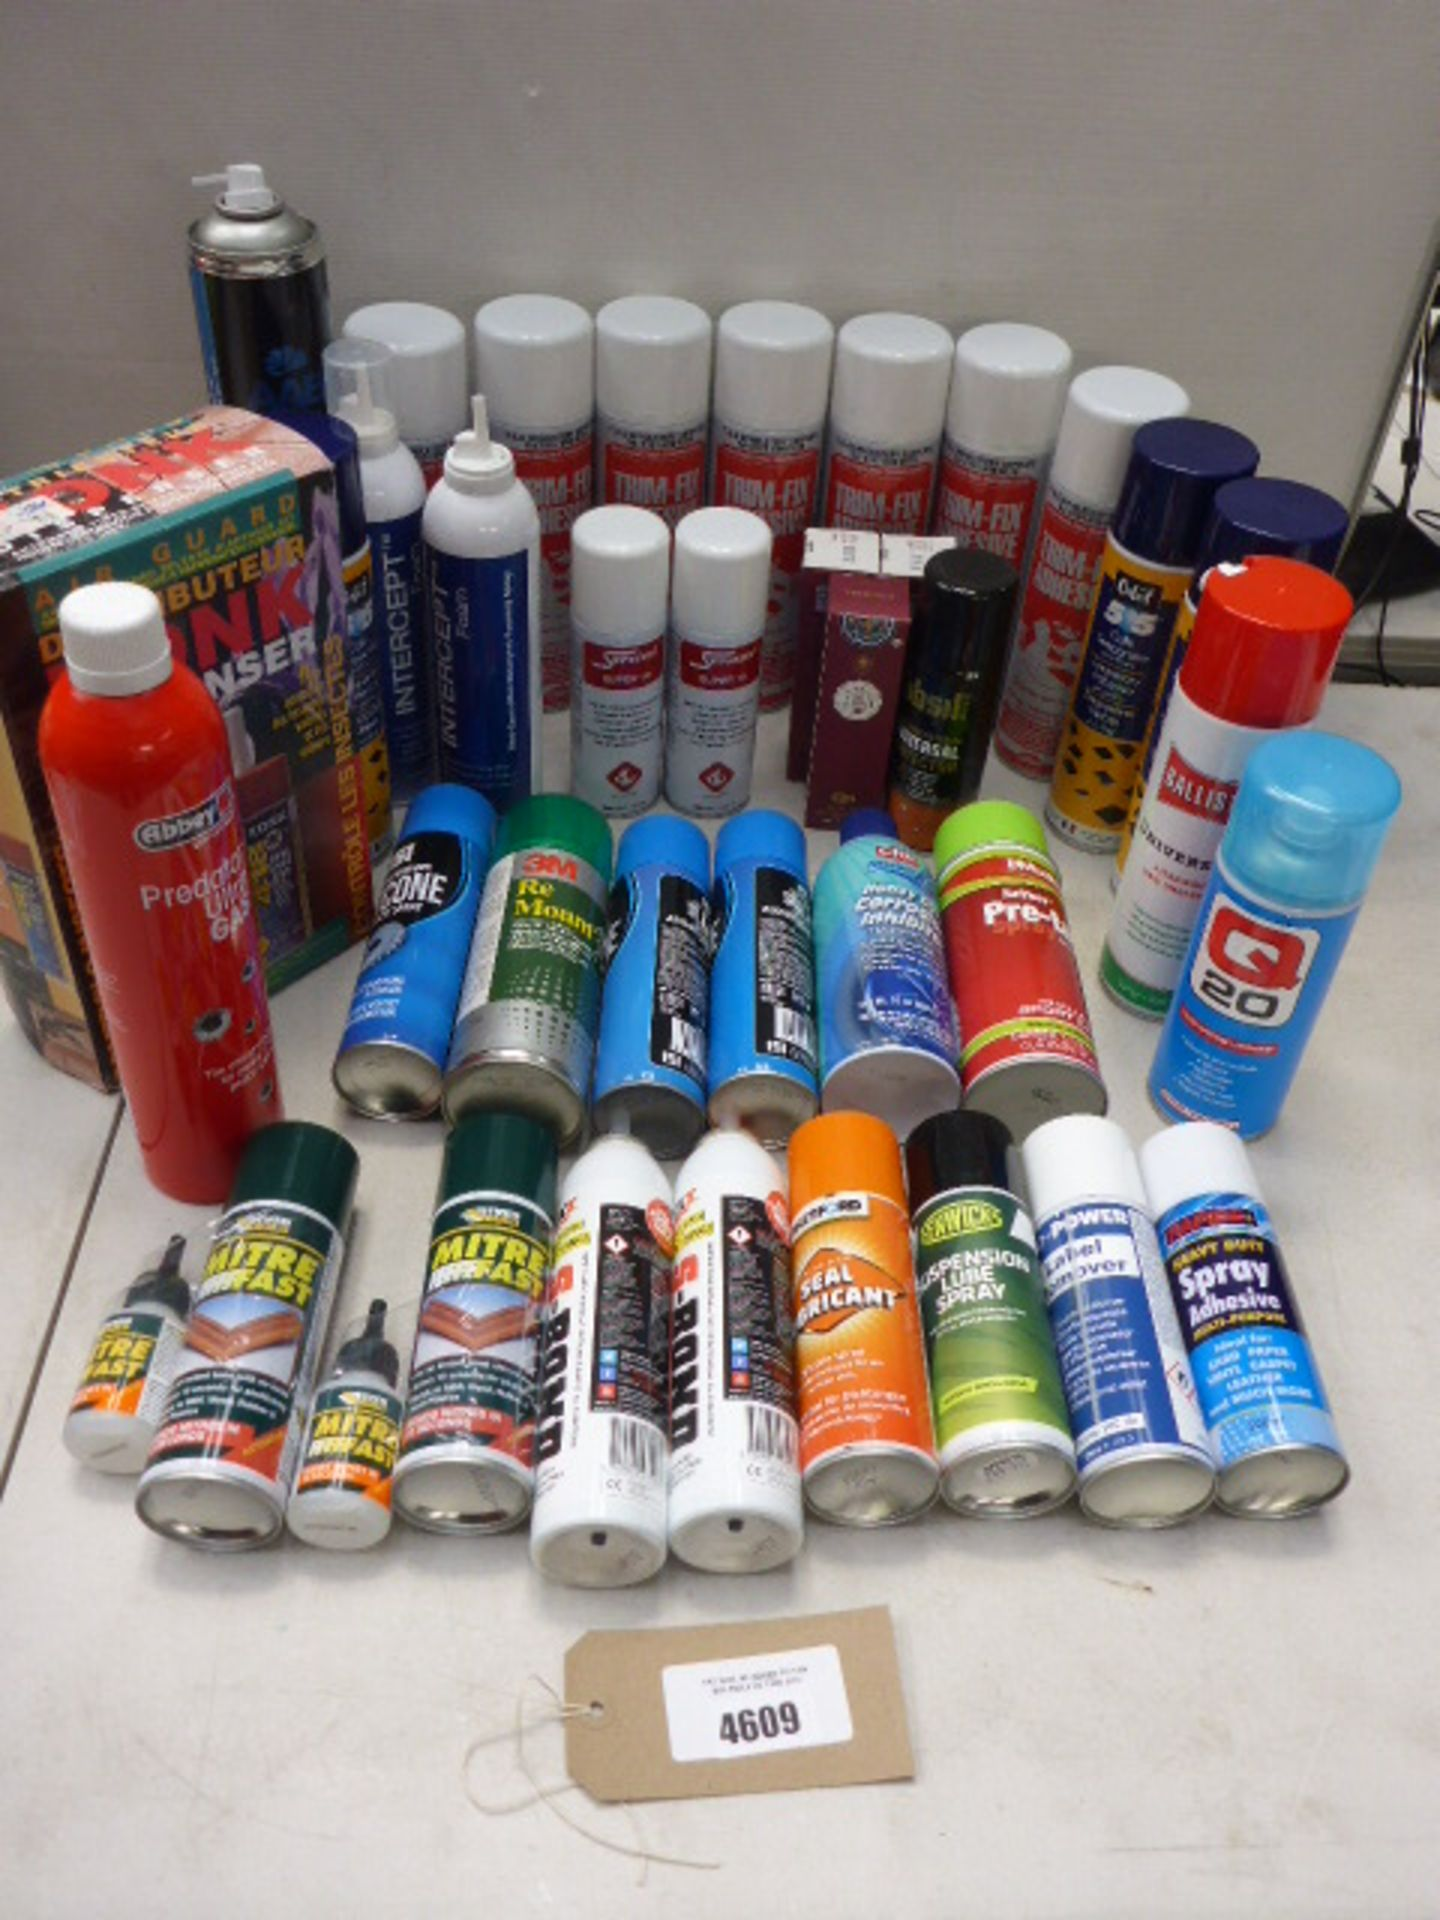 Lot 4609 - Bag containing spray mount, suspension lube spray, trim fix adhesive, mitre bond and other adhesives